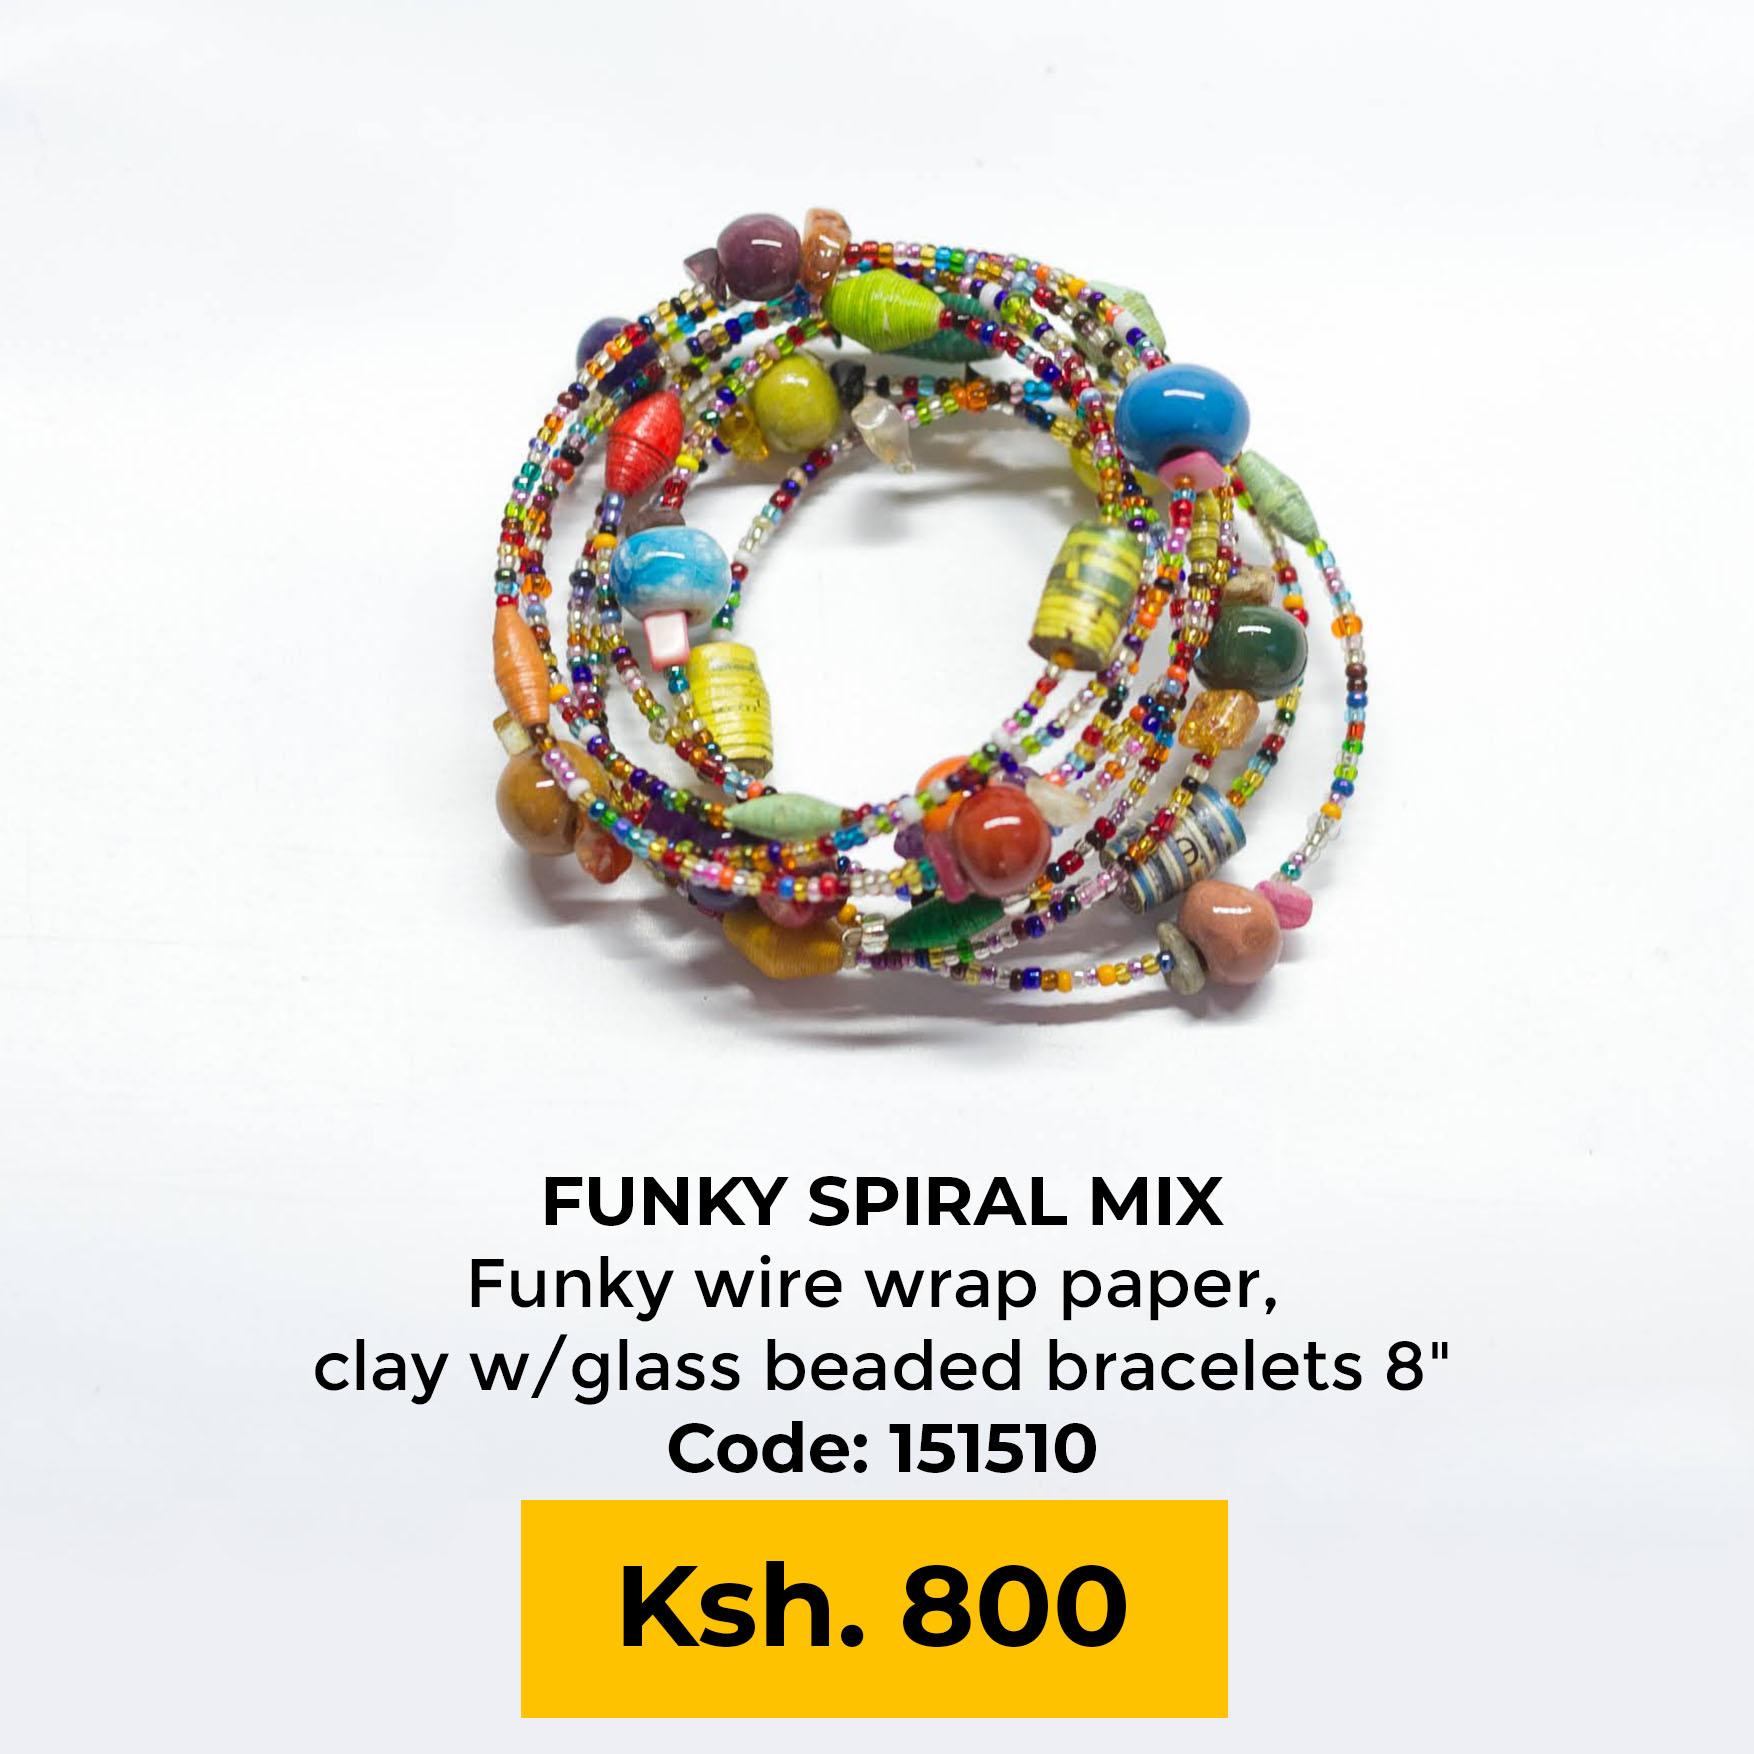 FUNKY-SPIRAL-MIX